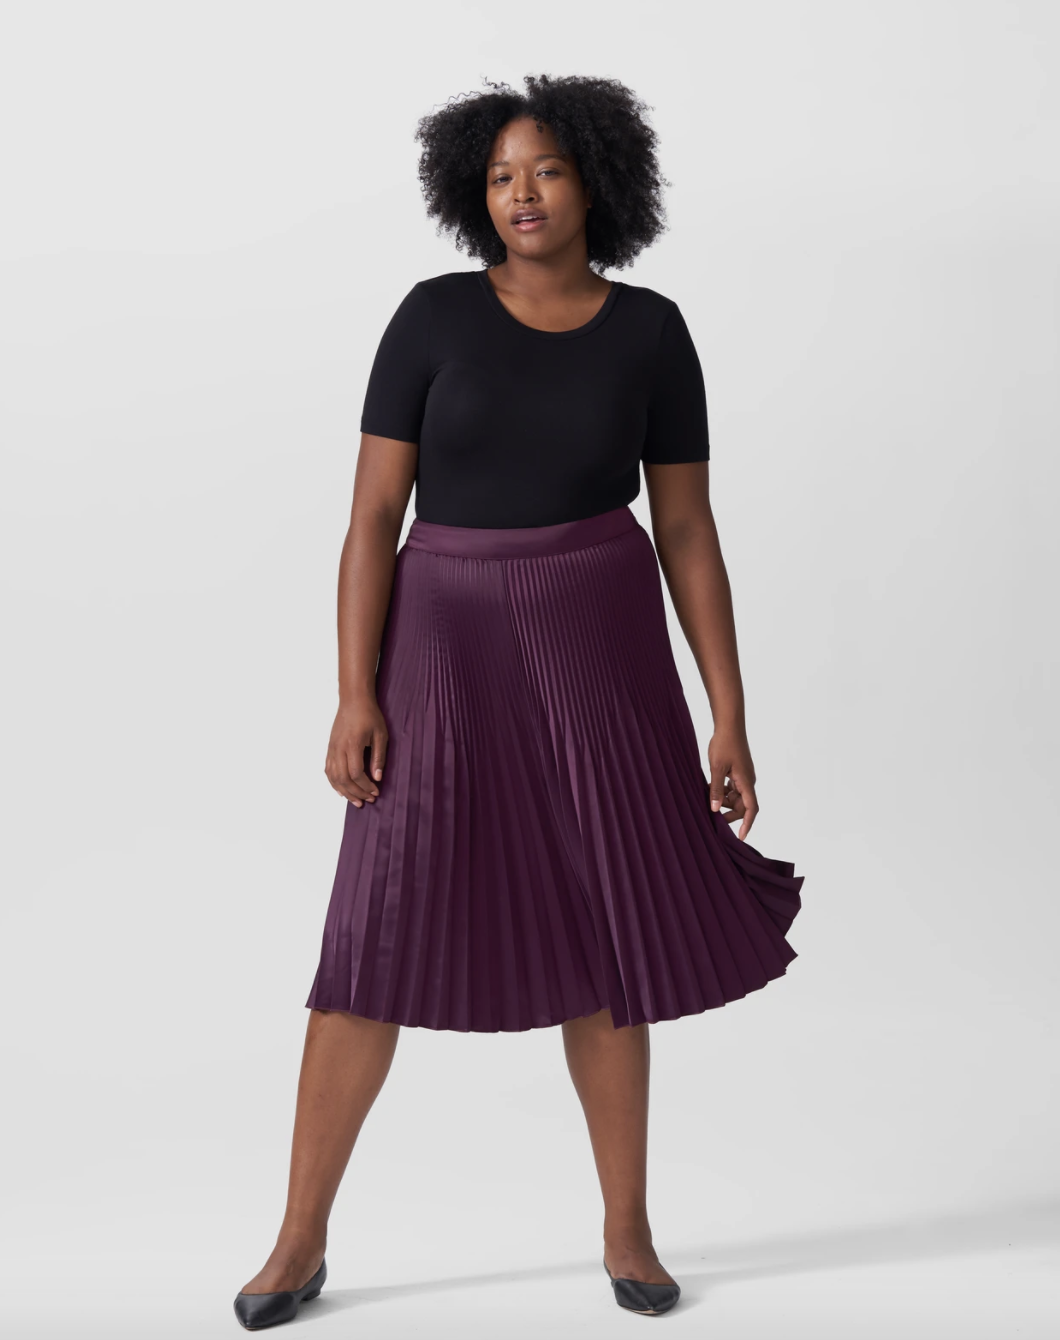 Model wearing the skirt in purple